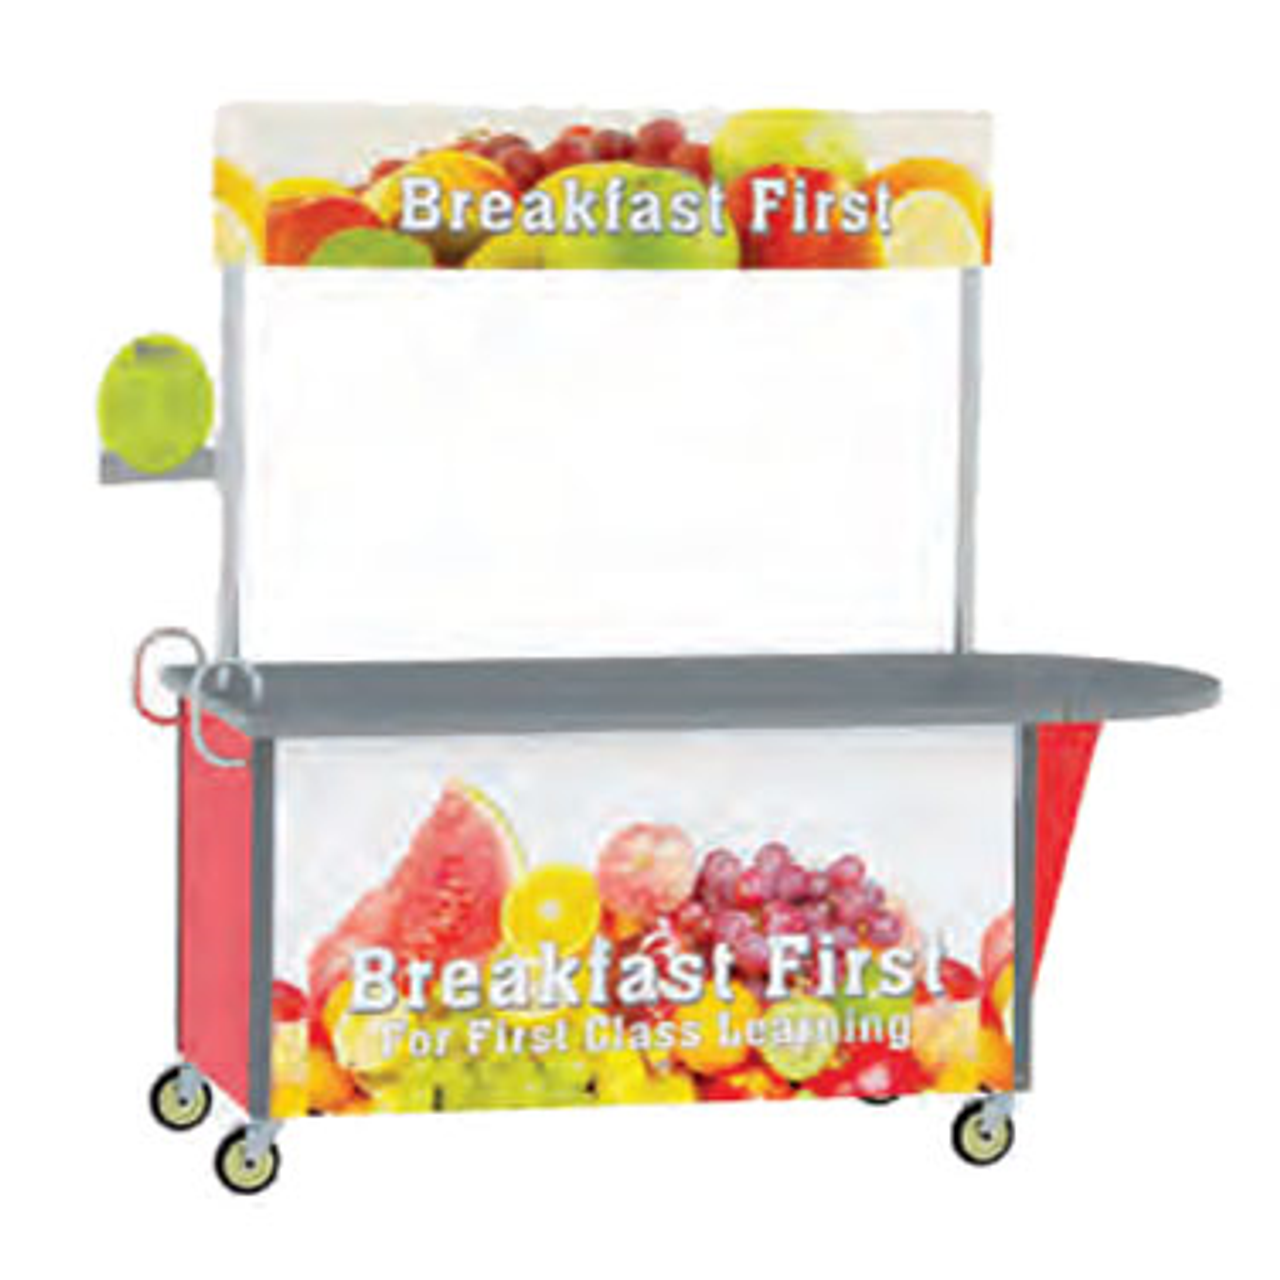 """Breakfast/Snack Cart, 65-1/2""""W x 35-1/2""""D x 80""""H, black laminate flat top, adjustable 65""""W x 12""""H overhead graphic banner on stainless steel posts, 20 gauge stainless steel cabinet base with laminate exterior, stainless steel interior compartment with 18 gauge floor, (2) ergonomic vertical push handles, (2) swivel & (2) swivel/brake 5"""" casters with cushion tread, Made in USA"""